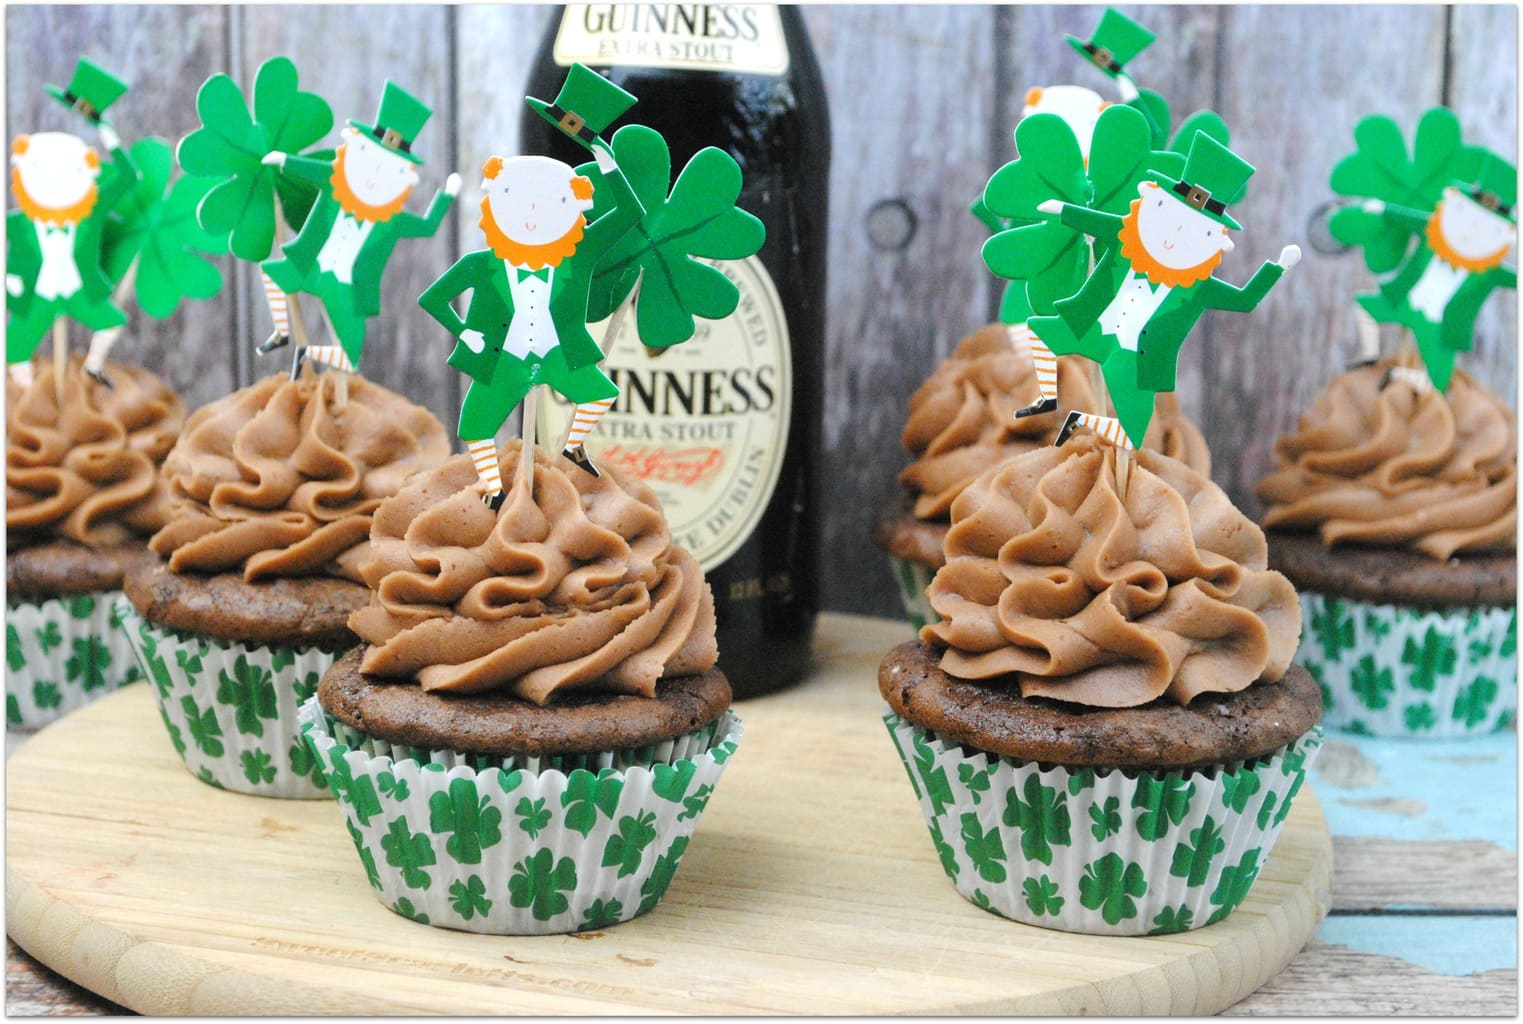 These Guinness Cupcakes with sweet cream chocolate frosting are to die for, and such an easy recipe to make! Not one for the kids as they are made with everyone's favorite Irish beer, but such a perfect dessert for that adult St. Patrick's Day Party!